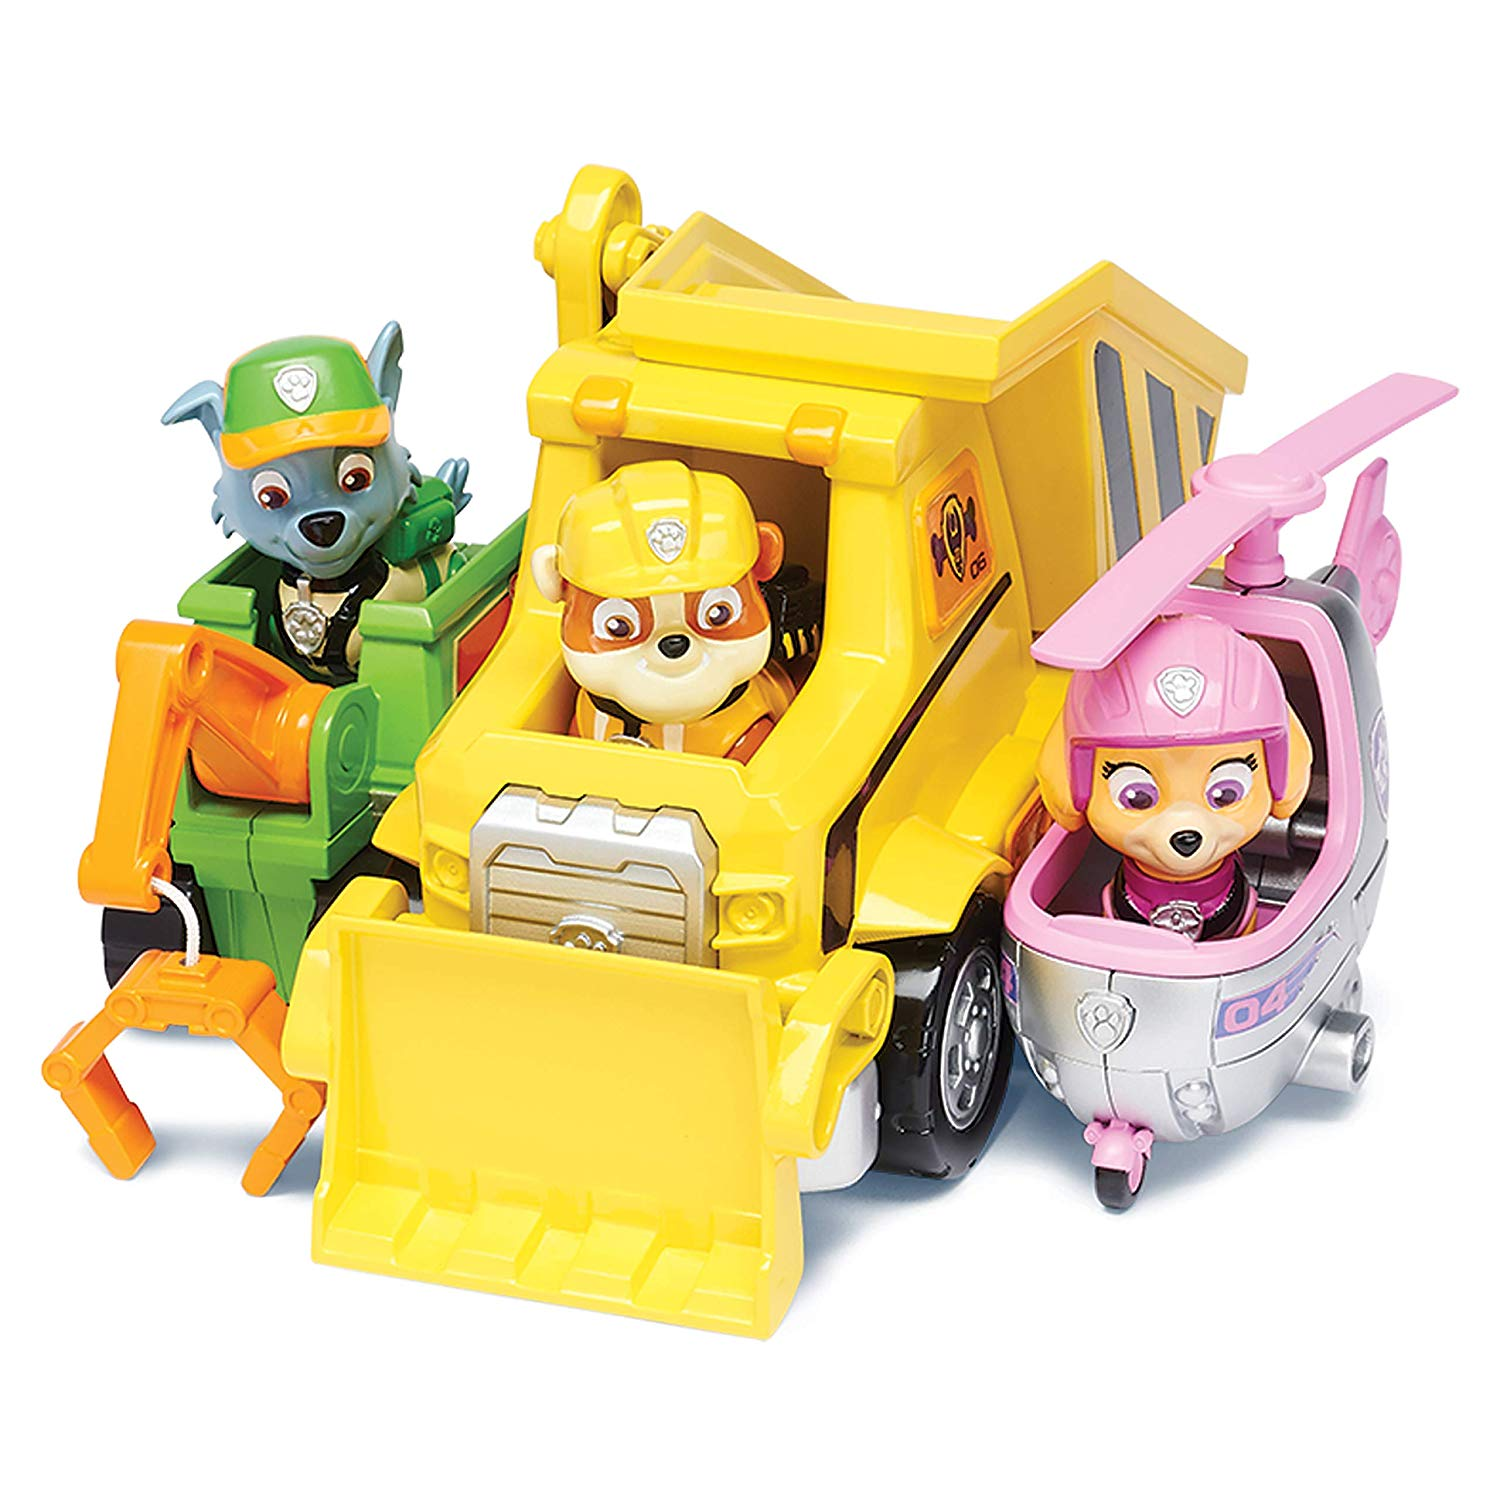 Patrulha Canina Ultimate Rescue Rubble Bulldozer - Sunny -1391